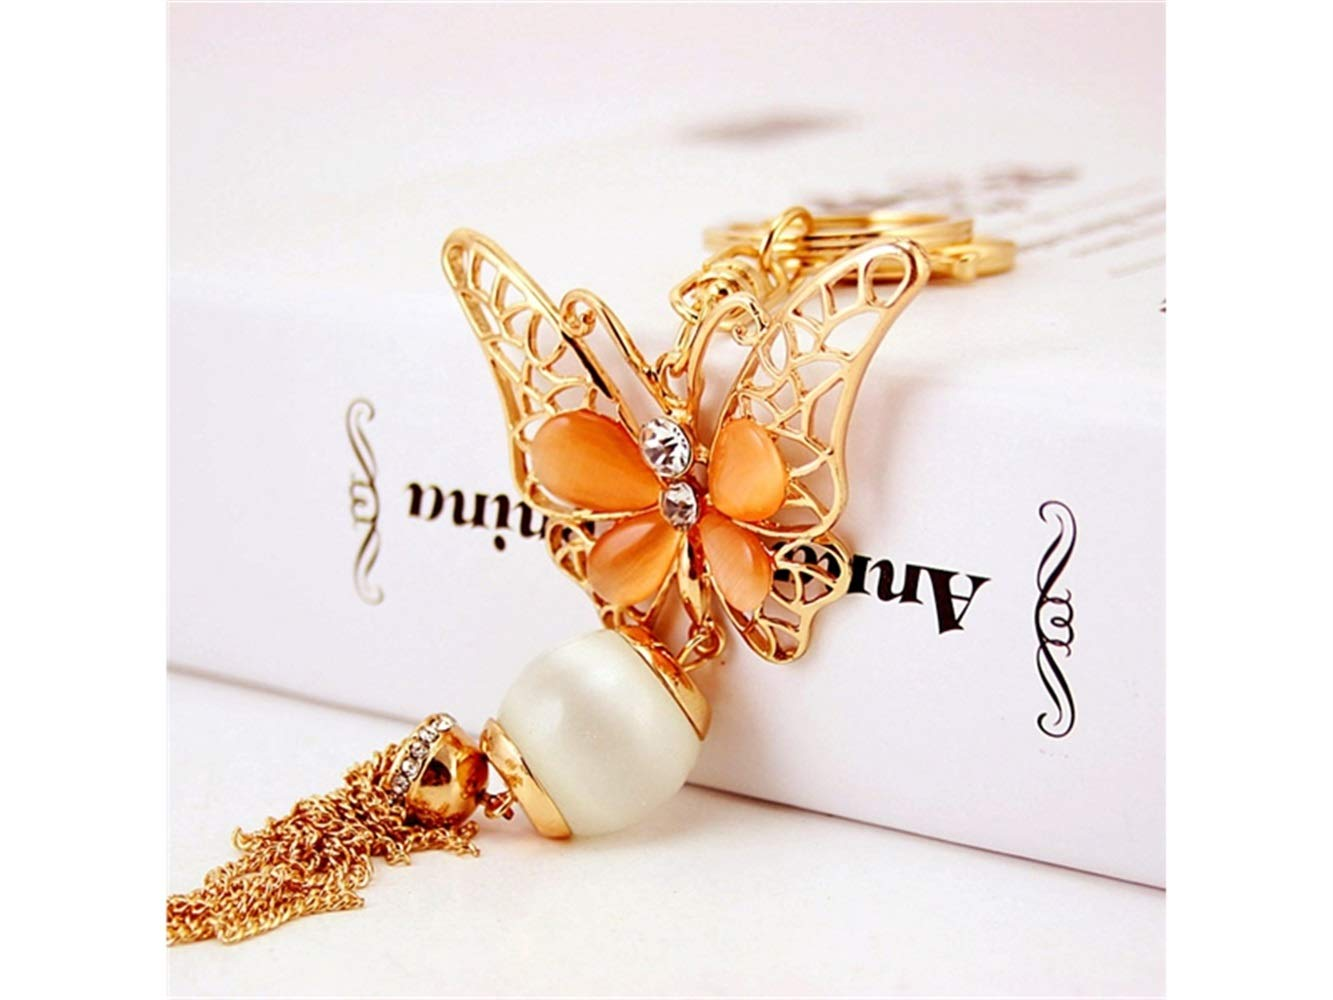 Car Keychain, Creative Exquisite Butterfly Tassel Keychain Animal Key Trinket Car Bag Key Holder Decorations(Orange) for Gift